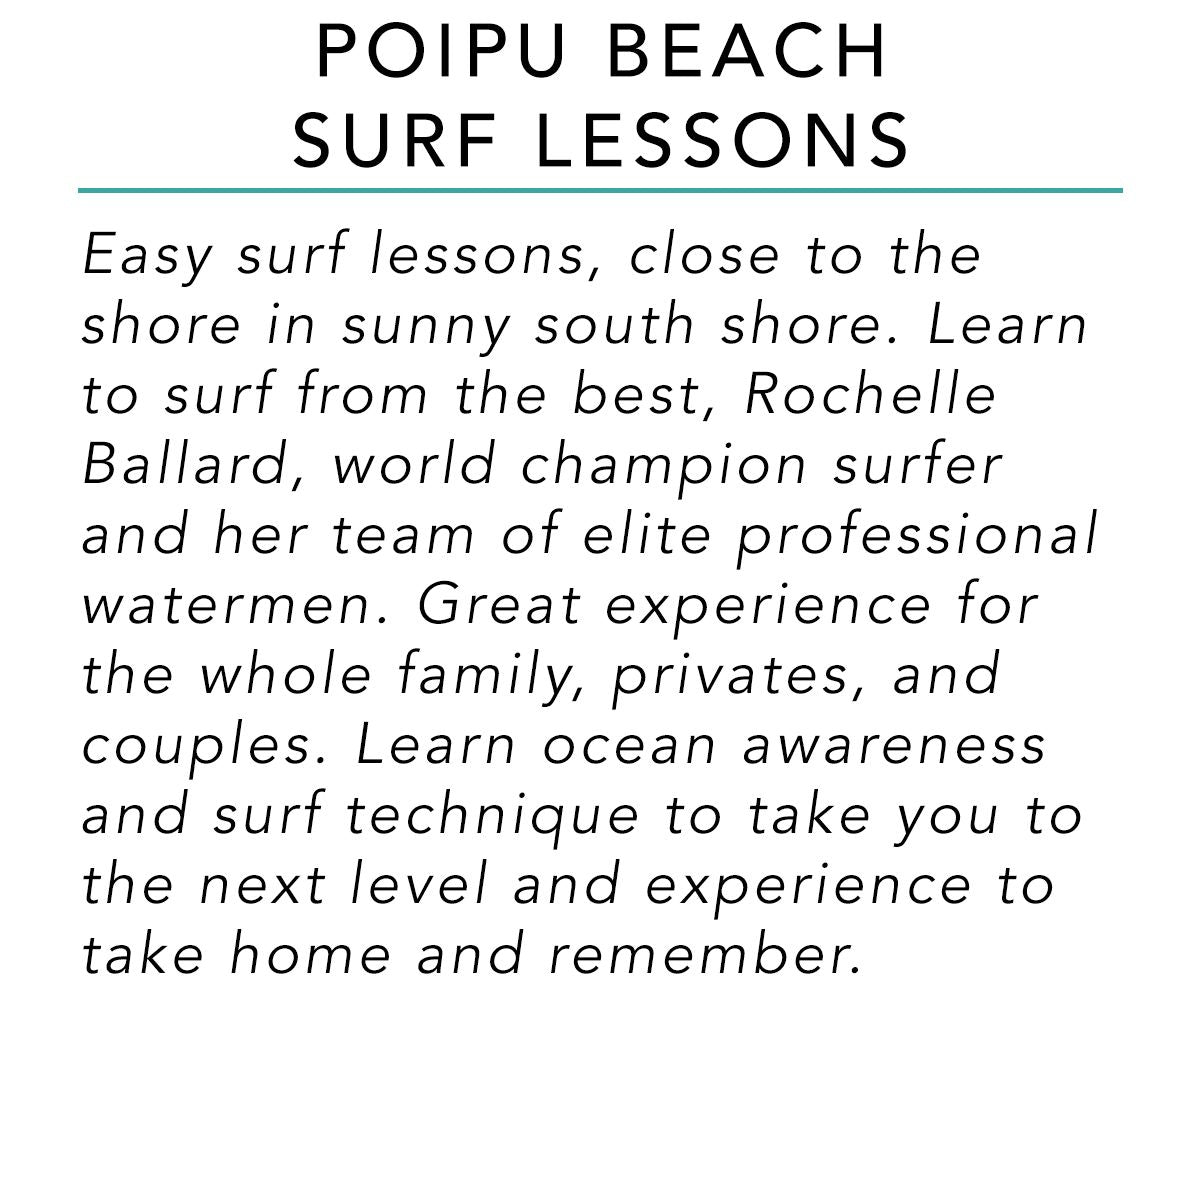 Poipu Beach Surf Lessons